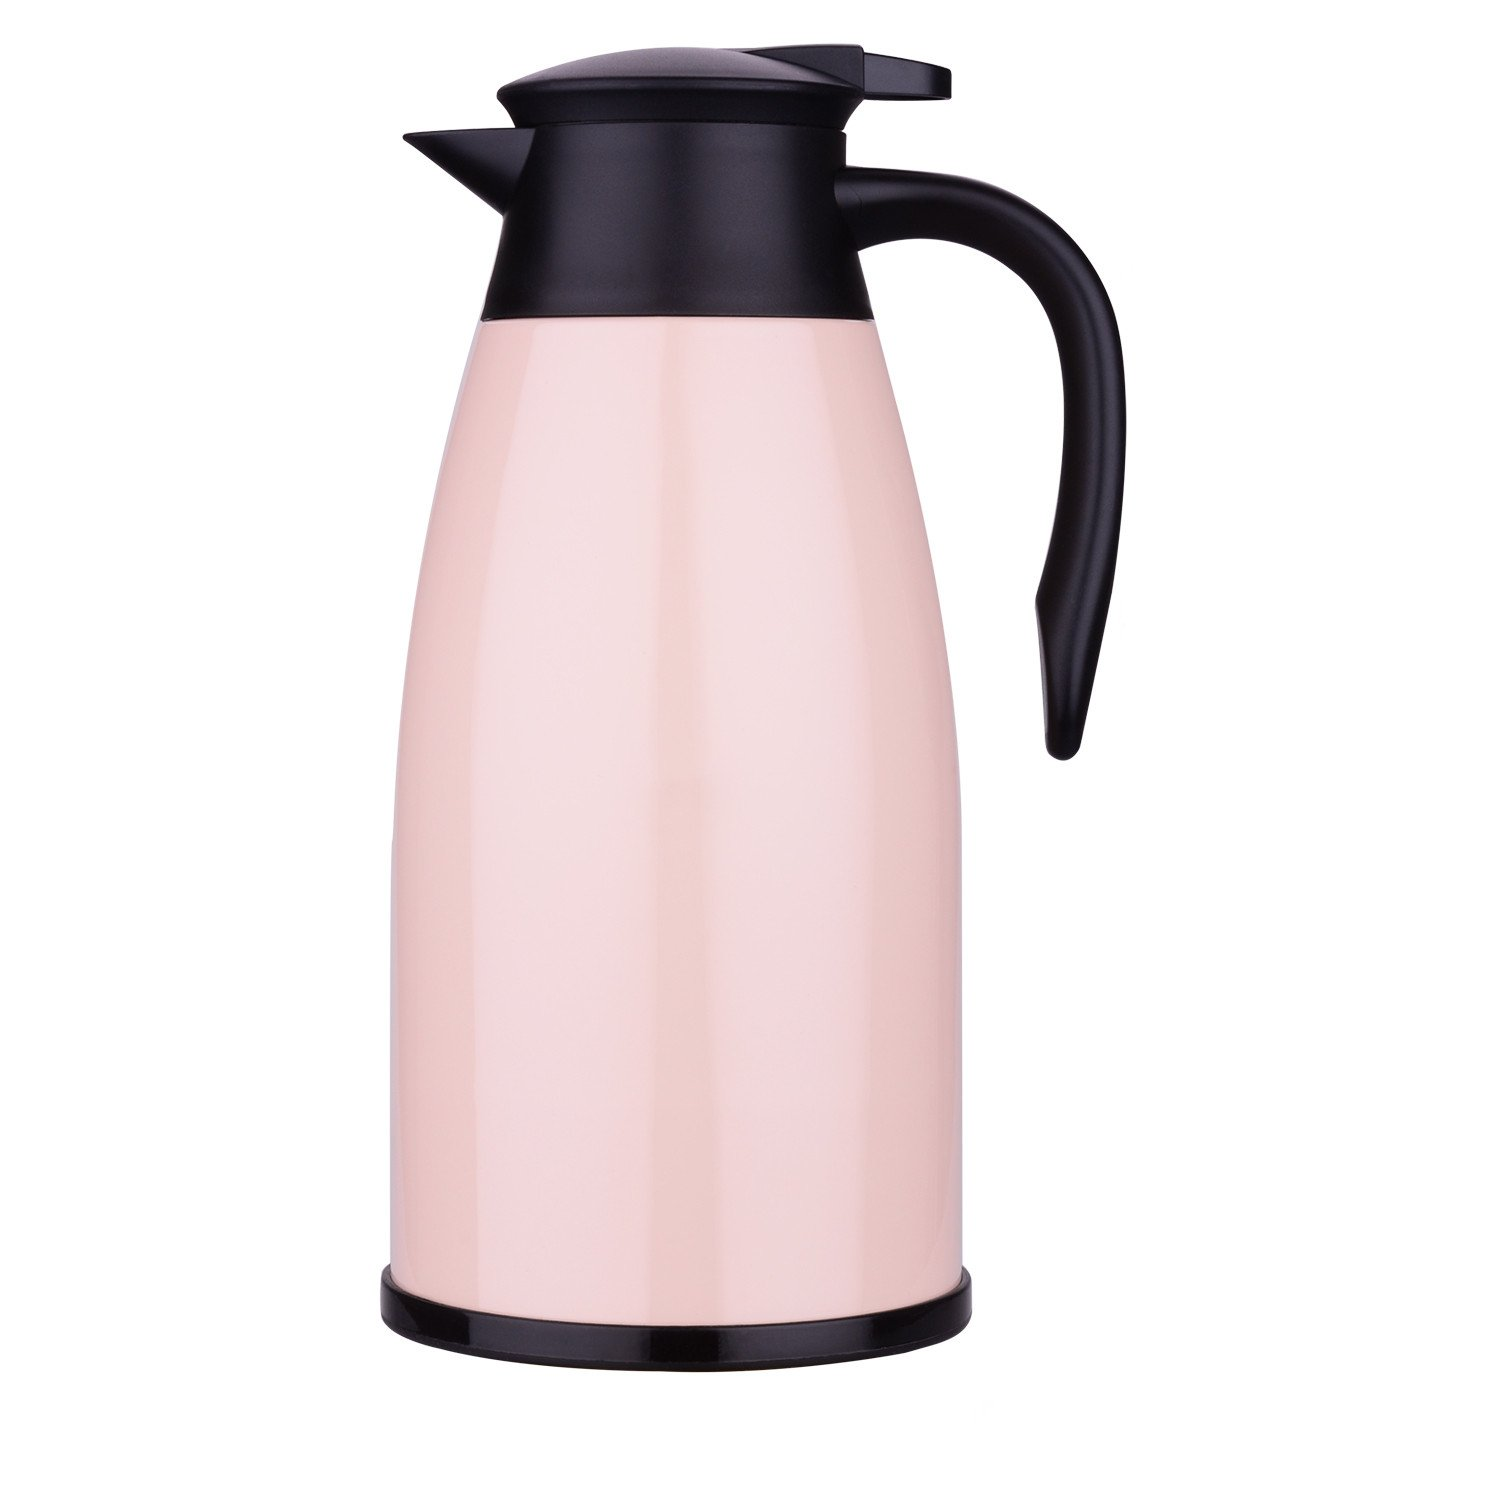 XLT-RSH Stainless Steel Insulated Coffee Pot/12 Hours Heat Preservation Teapot/ 2 Liters Large Volume Vacuum Flask/Double Wall Vacuum Thermos, With Leakproof Cover